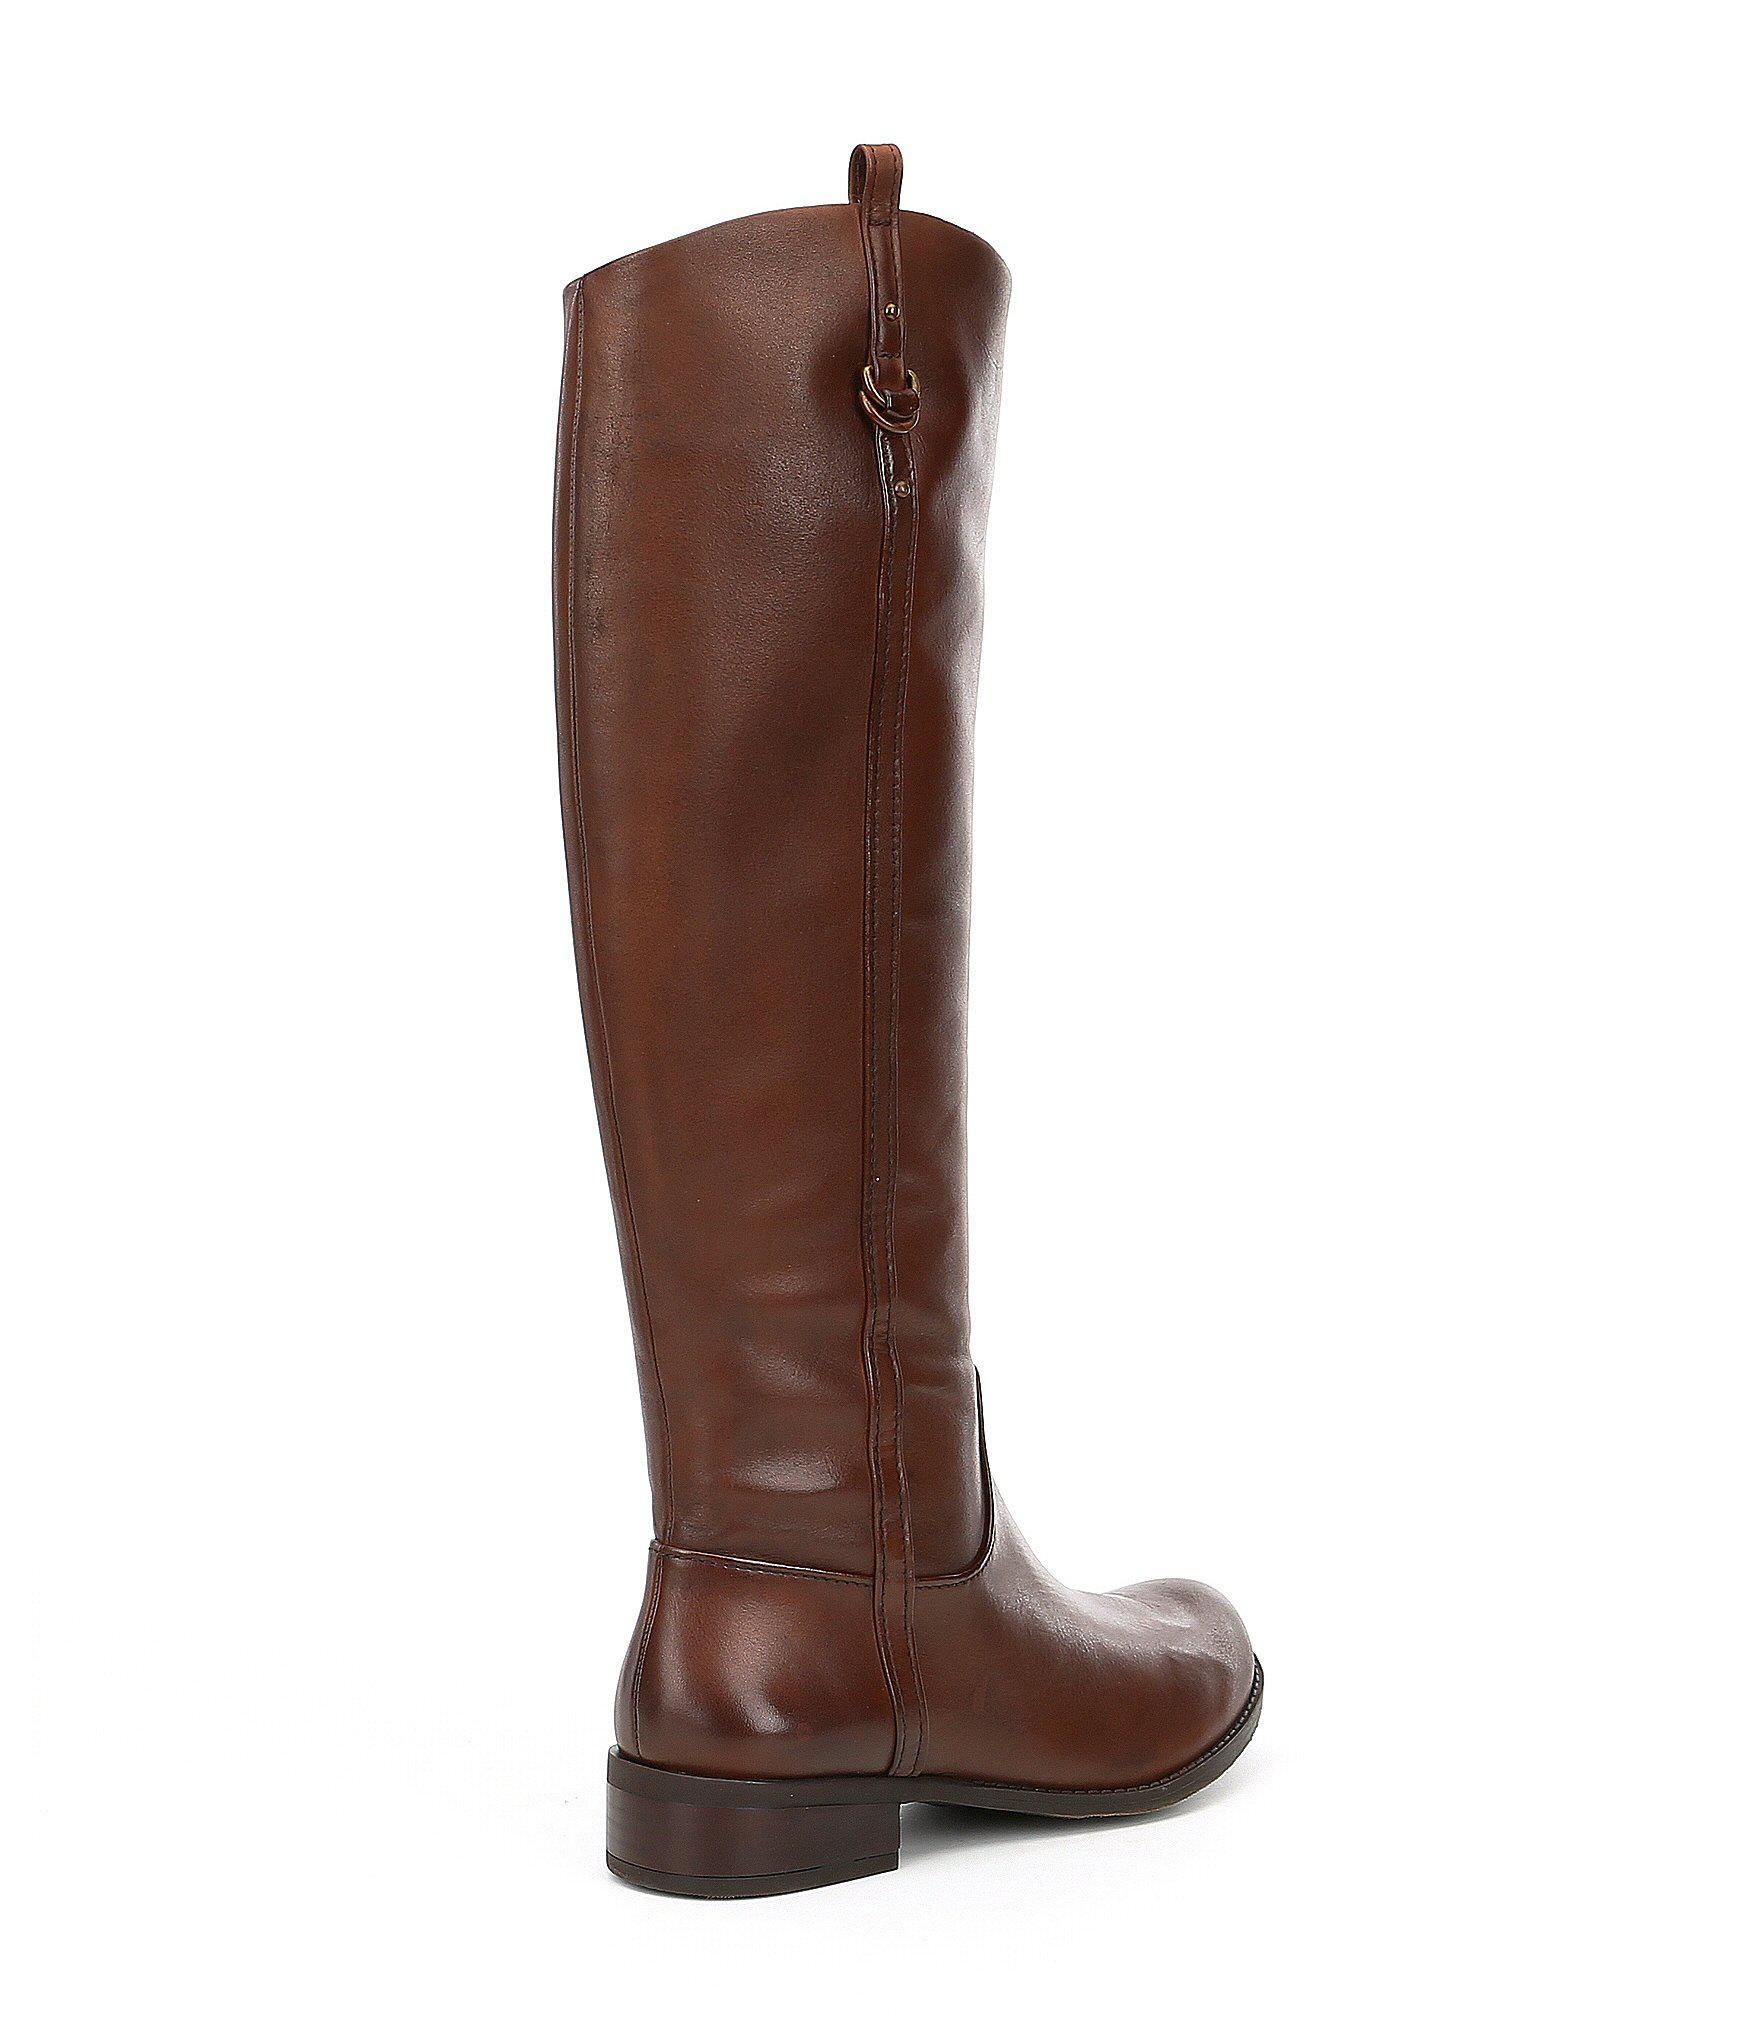 737516ca162d Gianni Bini Studded Riding Boots - Best Picture Of Boot Imageco.Org